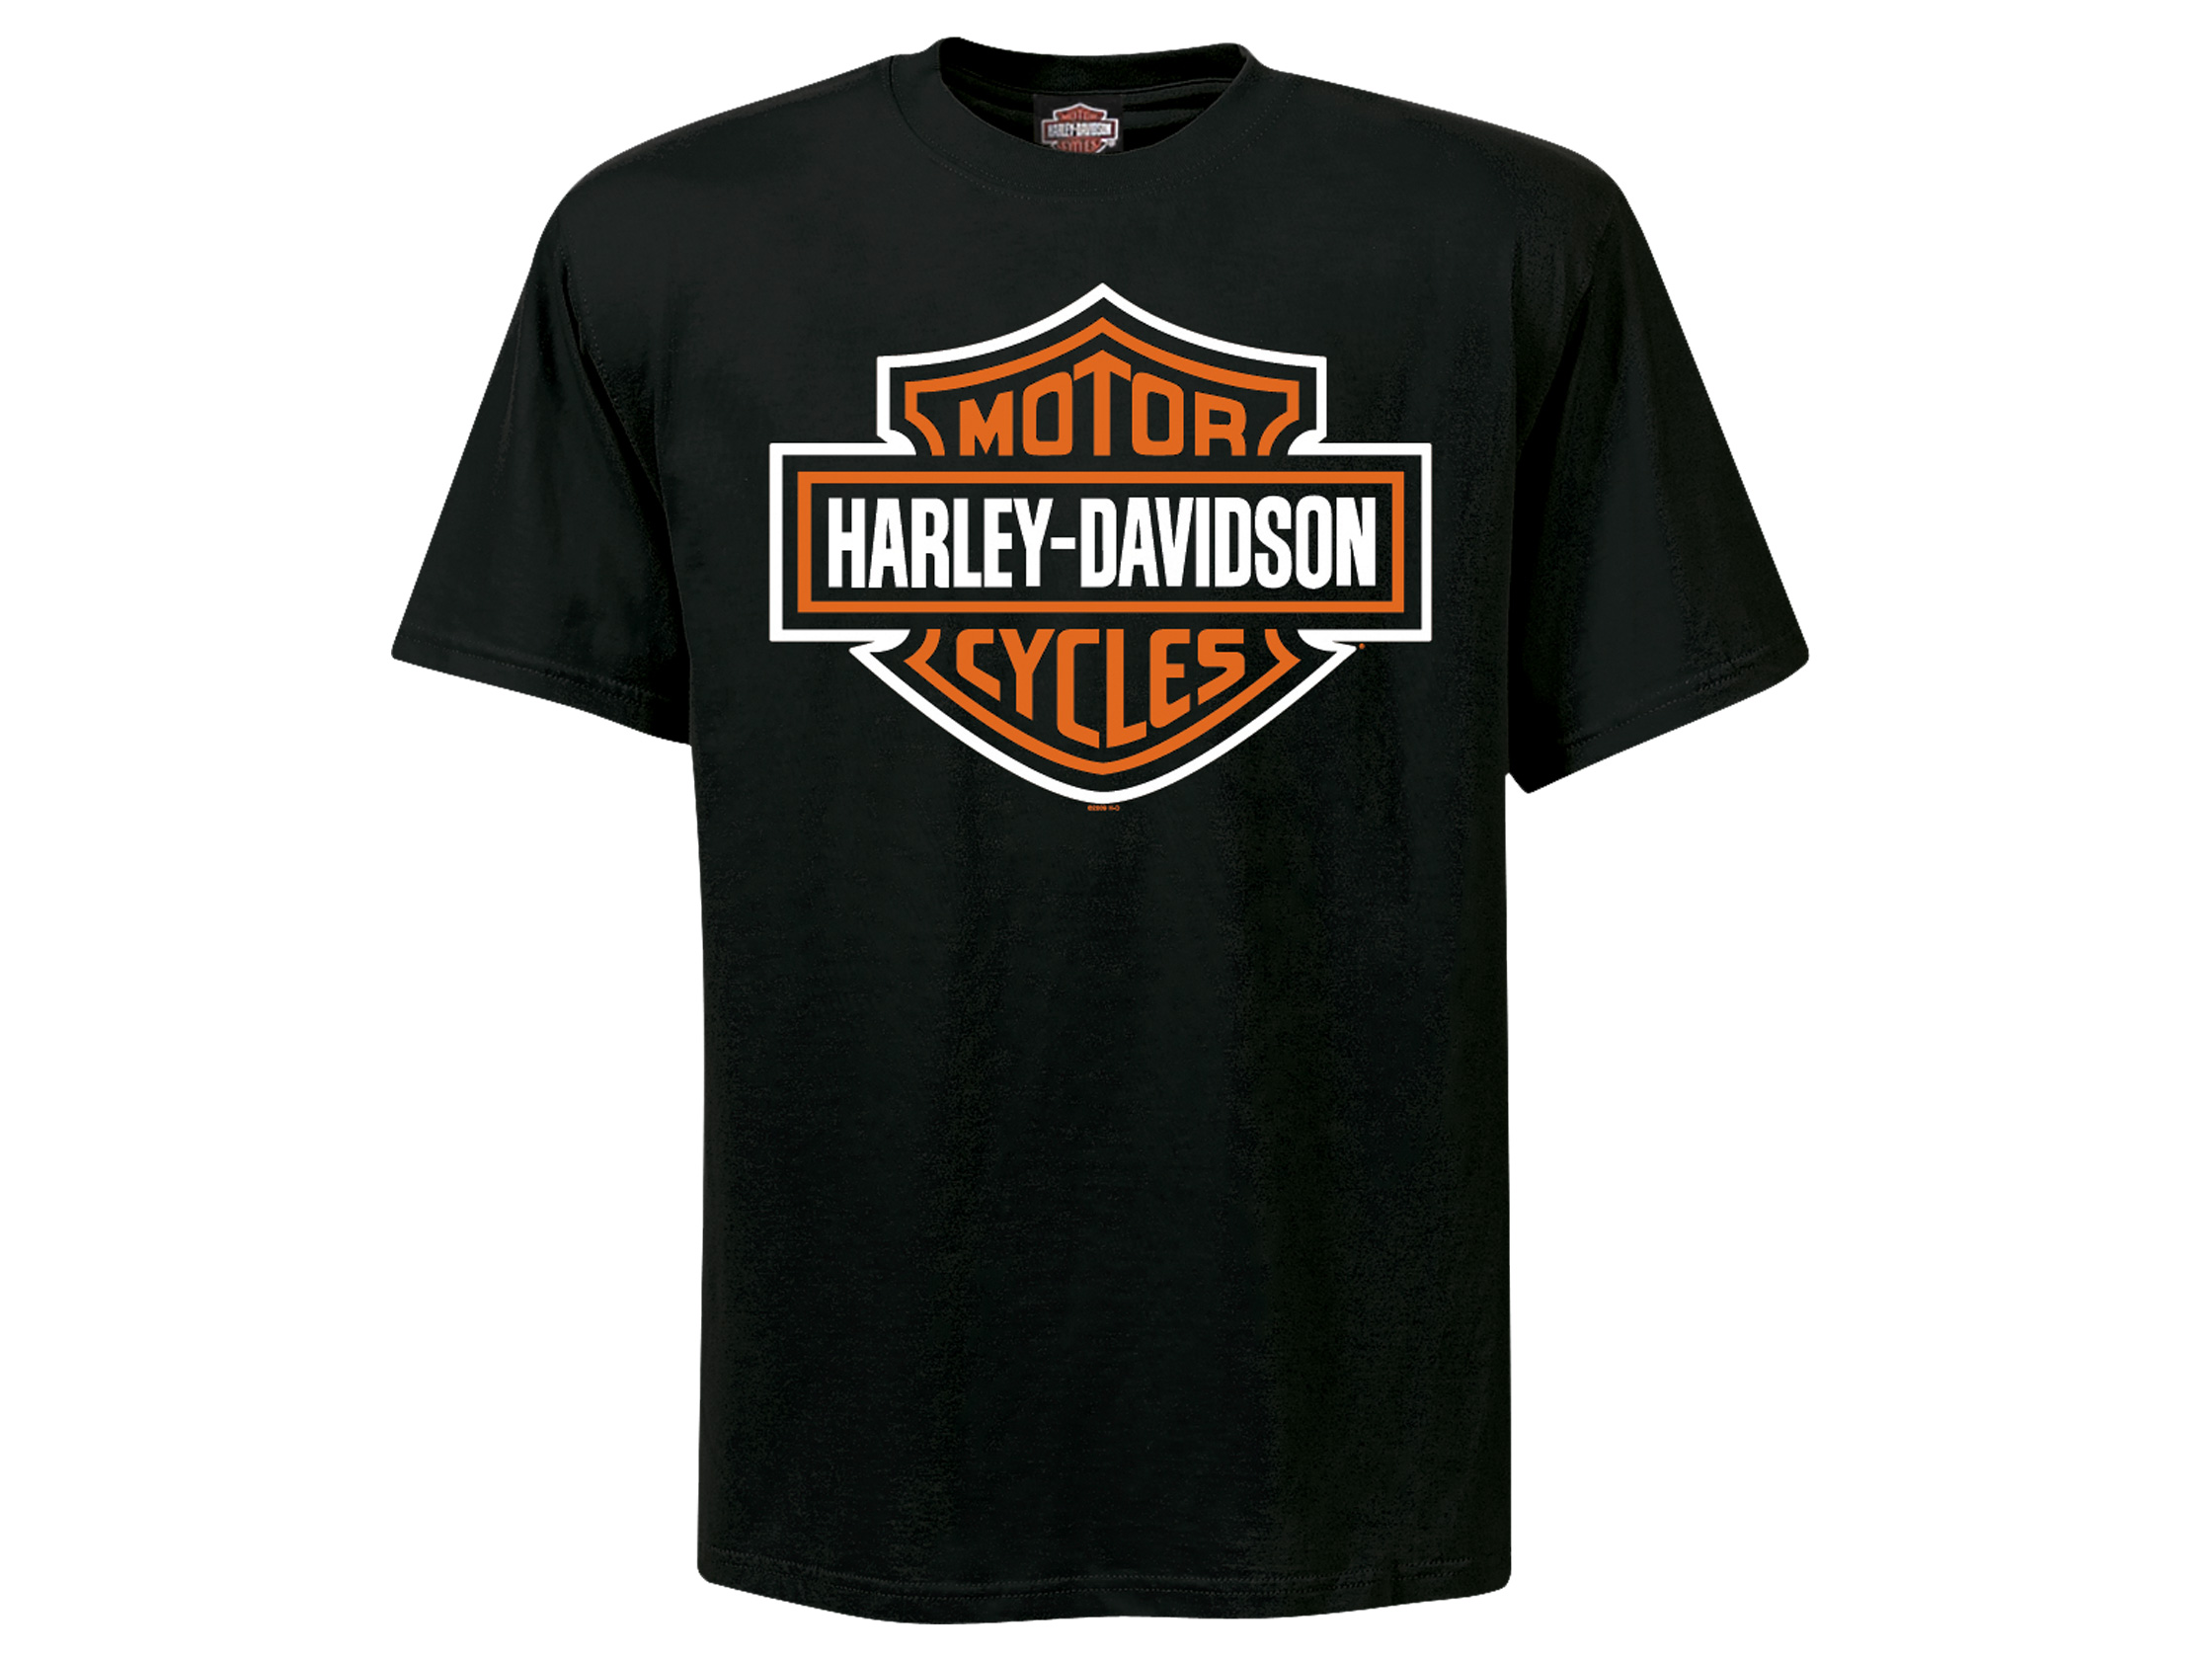 Iconic t shirt design - Harley Davidson T-shirt